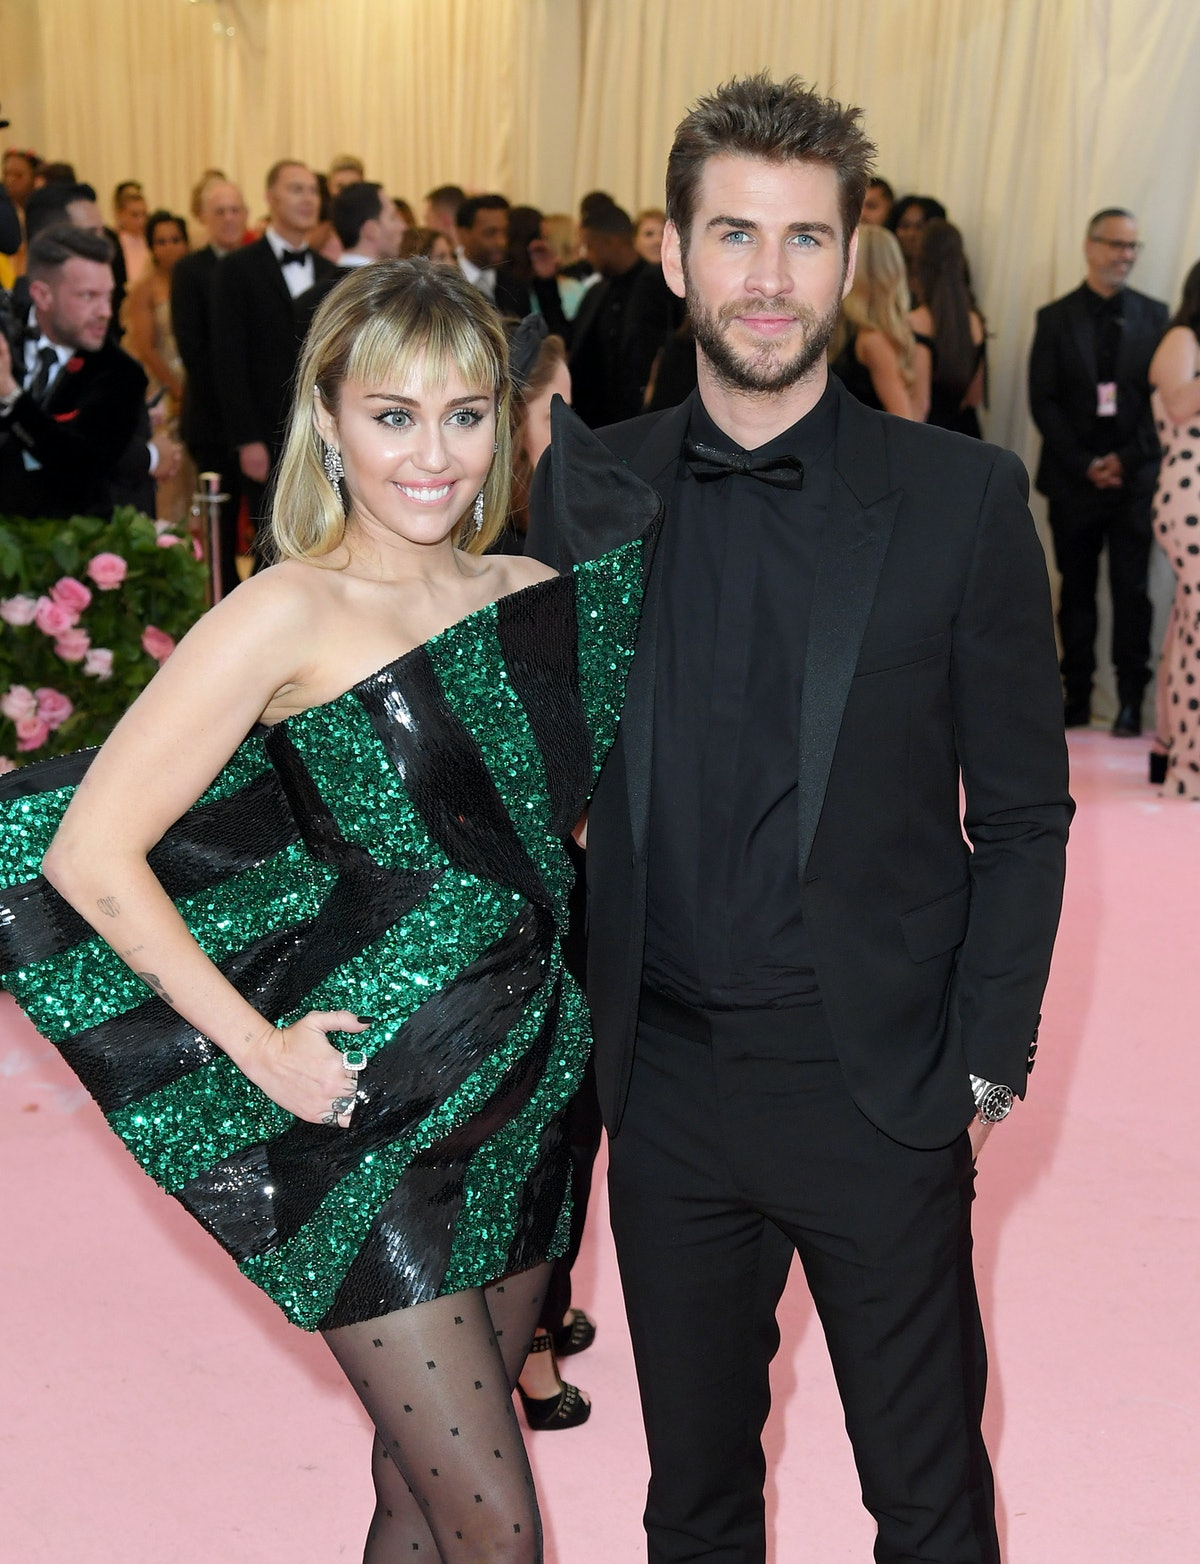 NEW YORK, NEW YORK - MAY 06: Miley Cyrus and Liam Hemsworth arrive for the 2019 Met Gala celebrating Camp: Notes on Fashion at The Metropolitan Museum of Art on May 06, 2019 in New York City. (Photo by Karwai Tang/Getty Images)